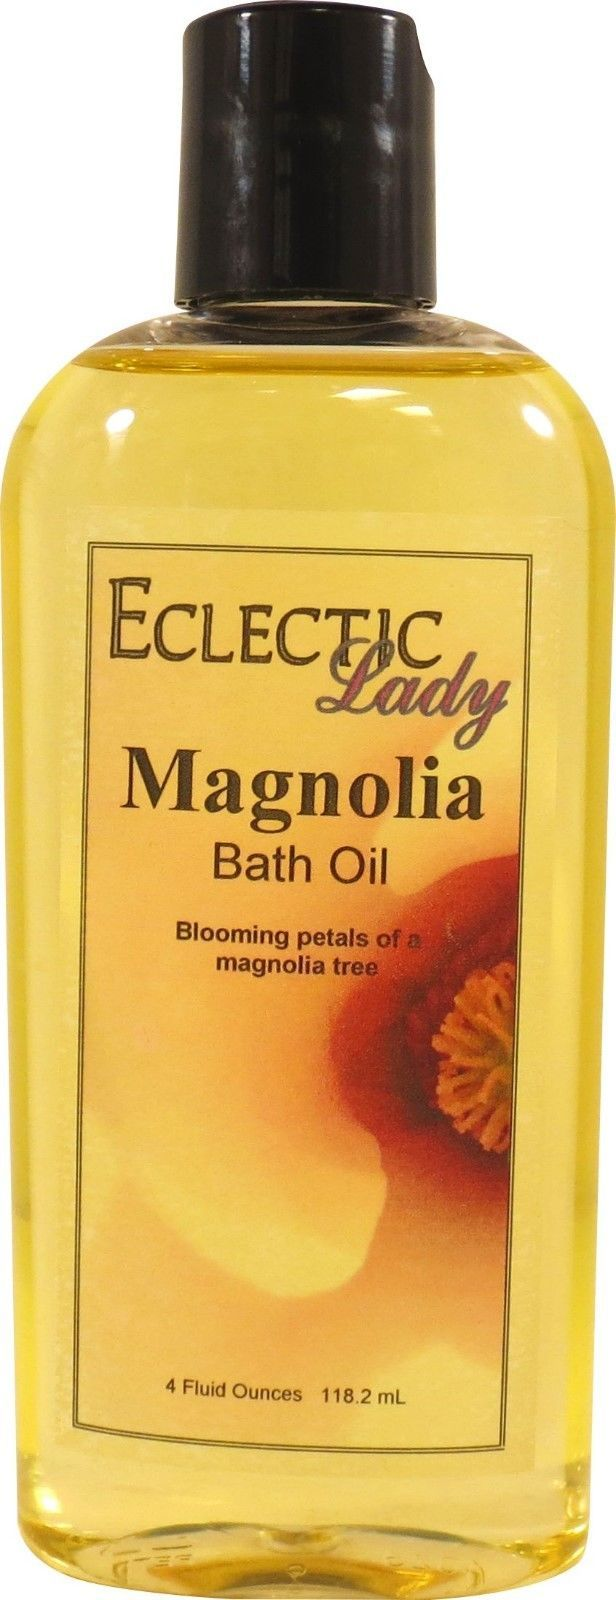 Magnolia Bath Oil